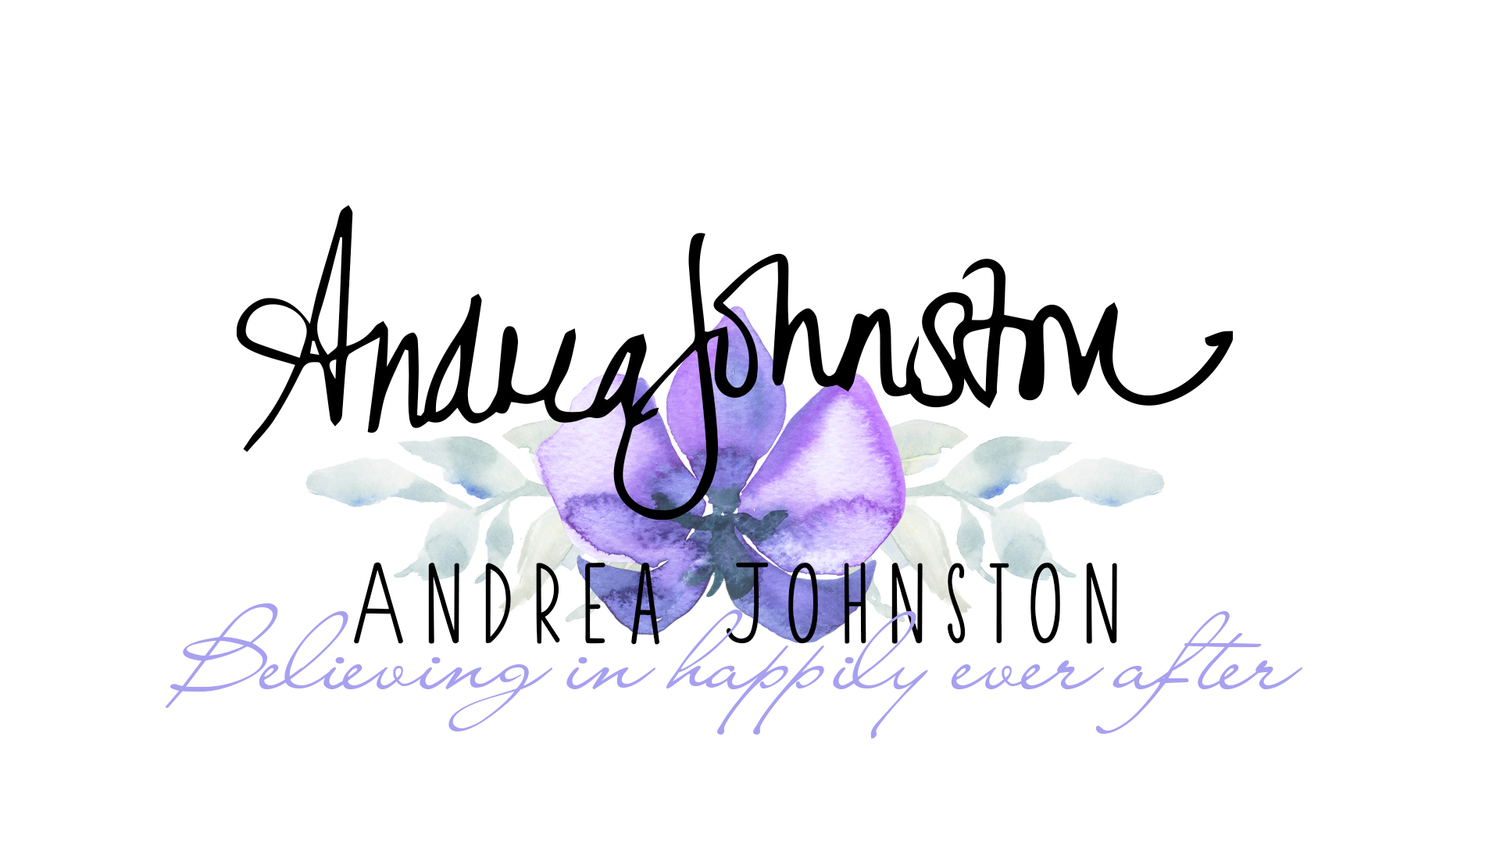 Andrea Johnston